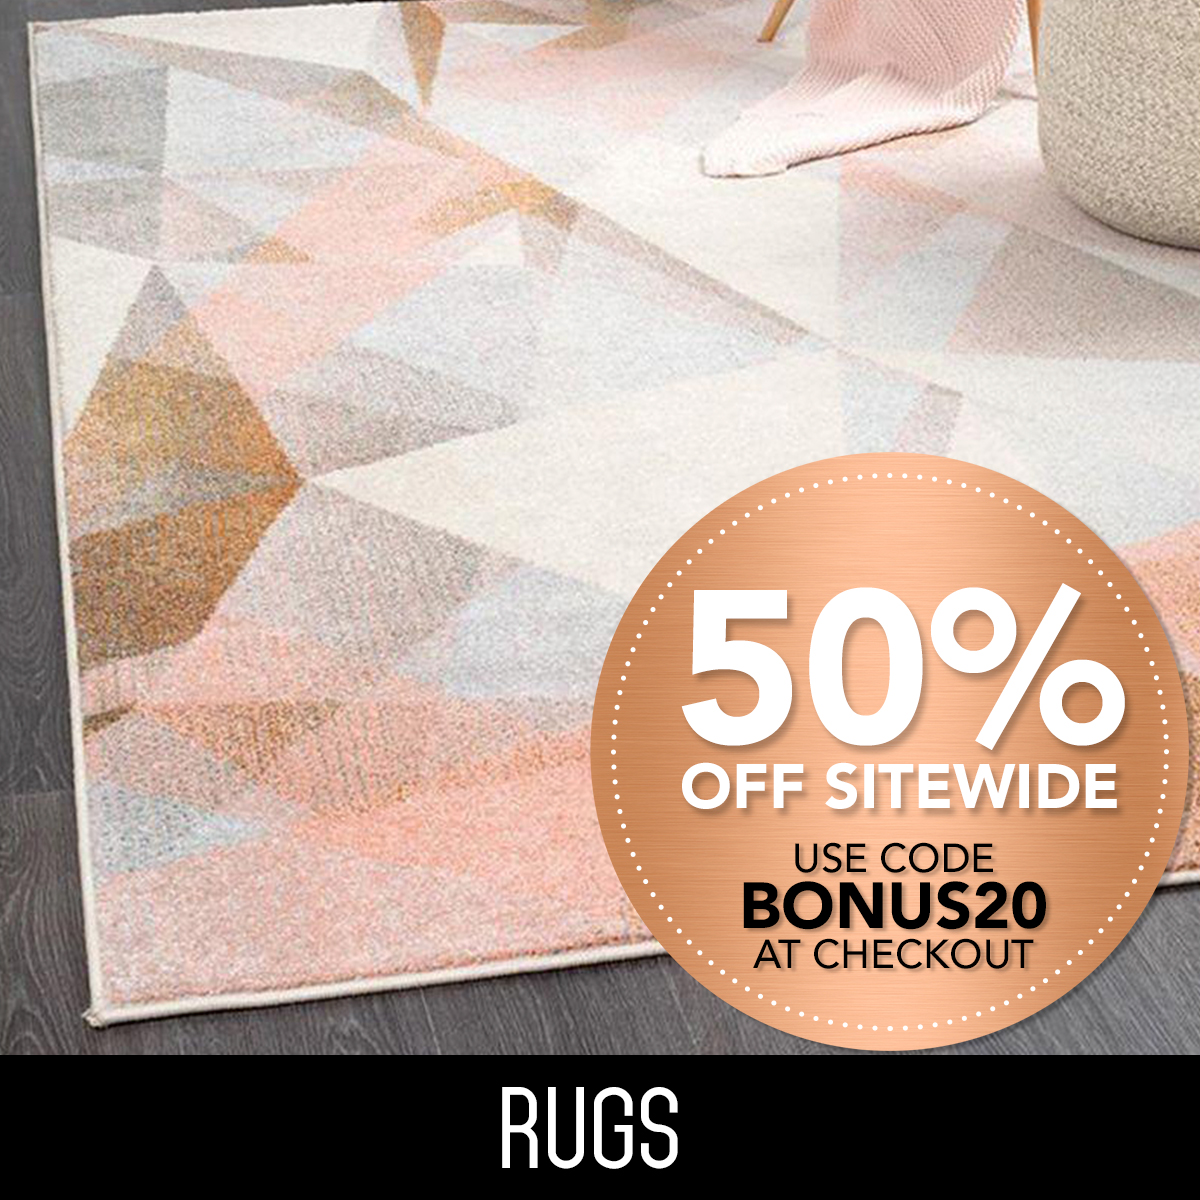 View all Rugs